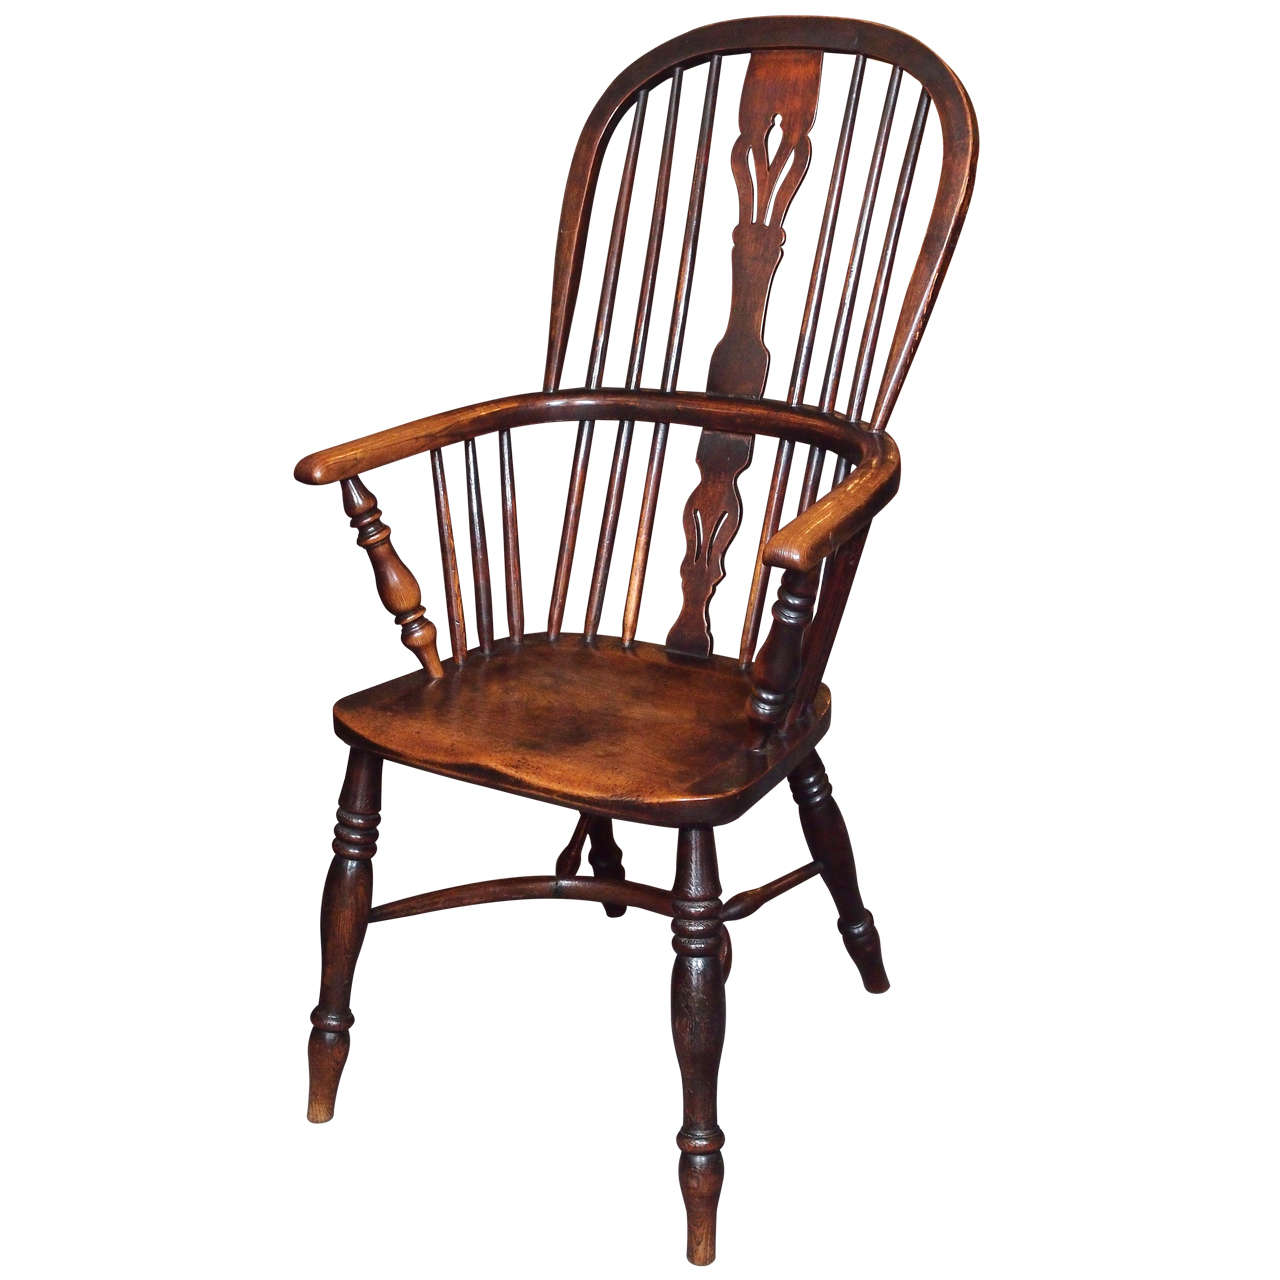 antique windsor chairs bedroom chair brisbane english elm and ash with crinoline stretcher for sale